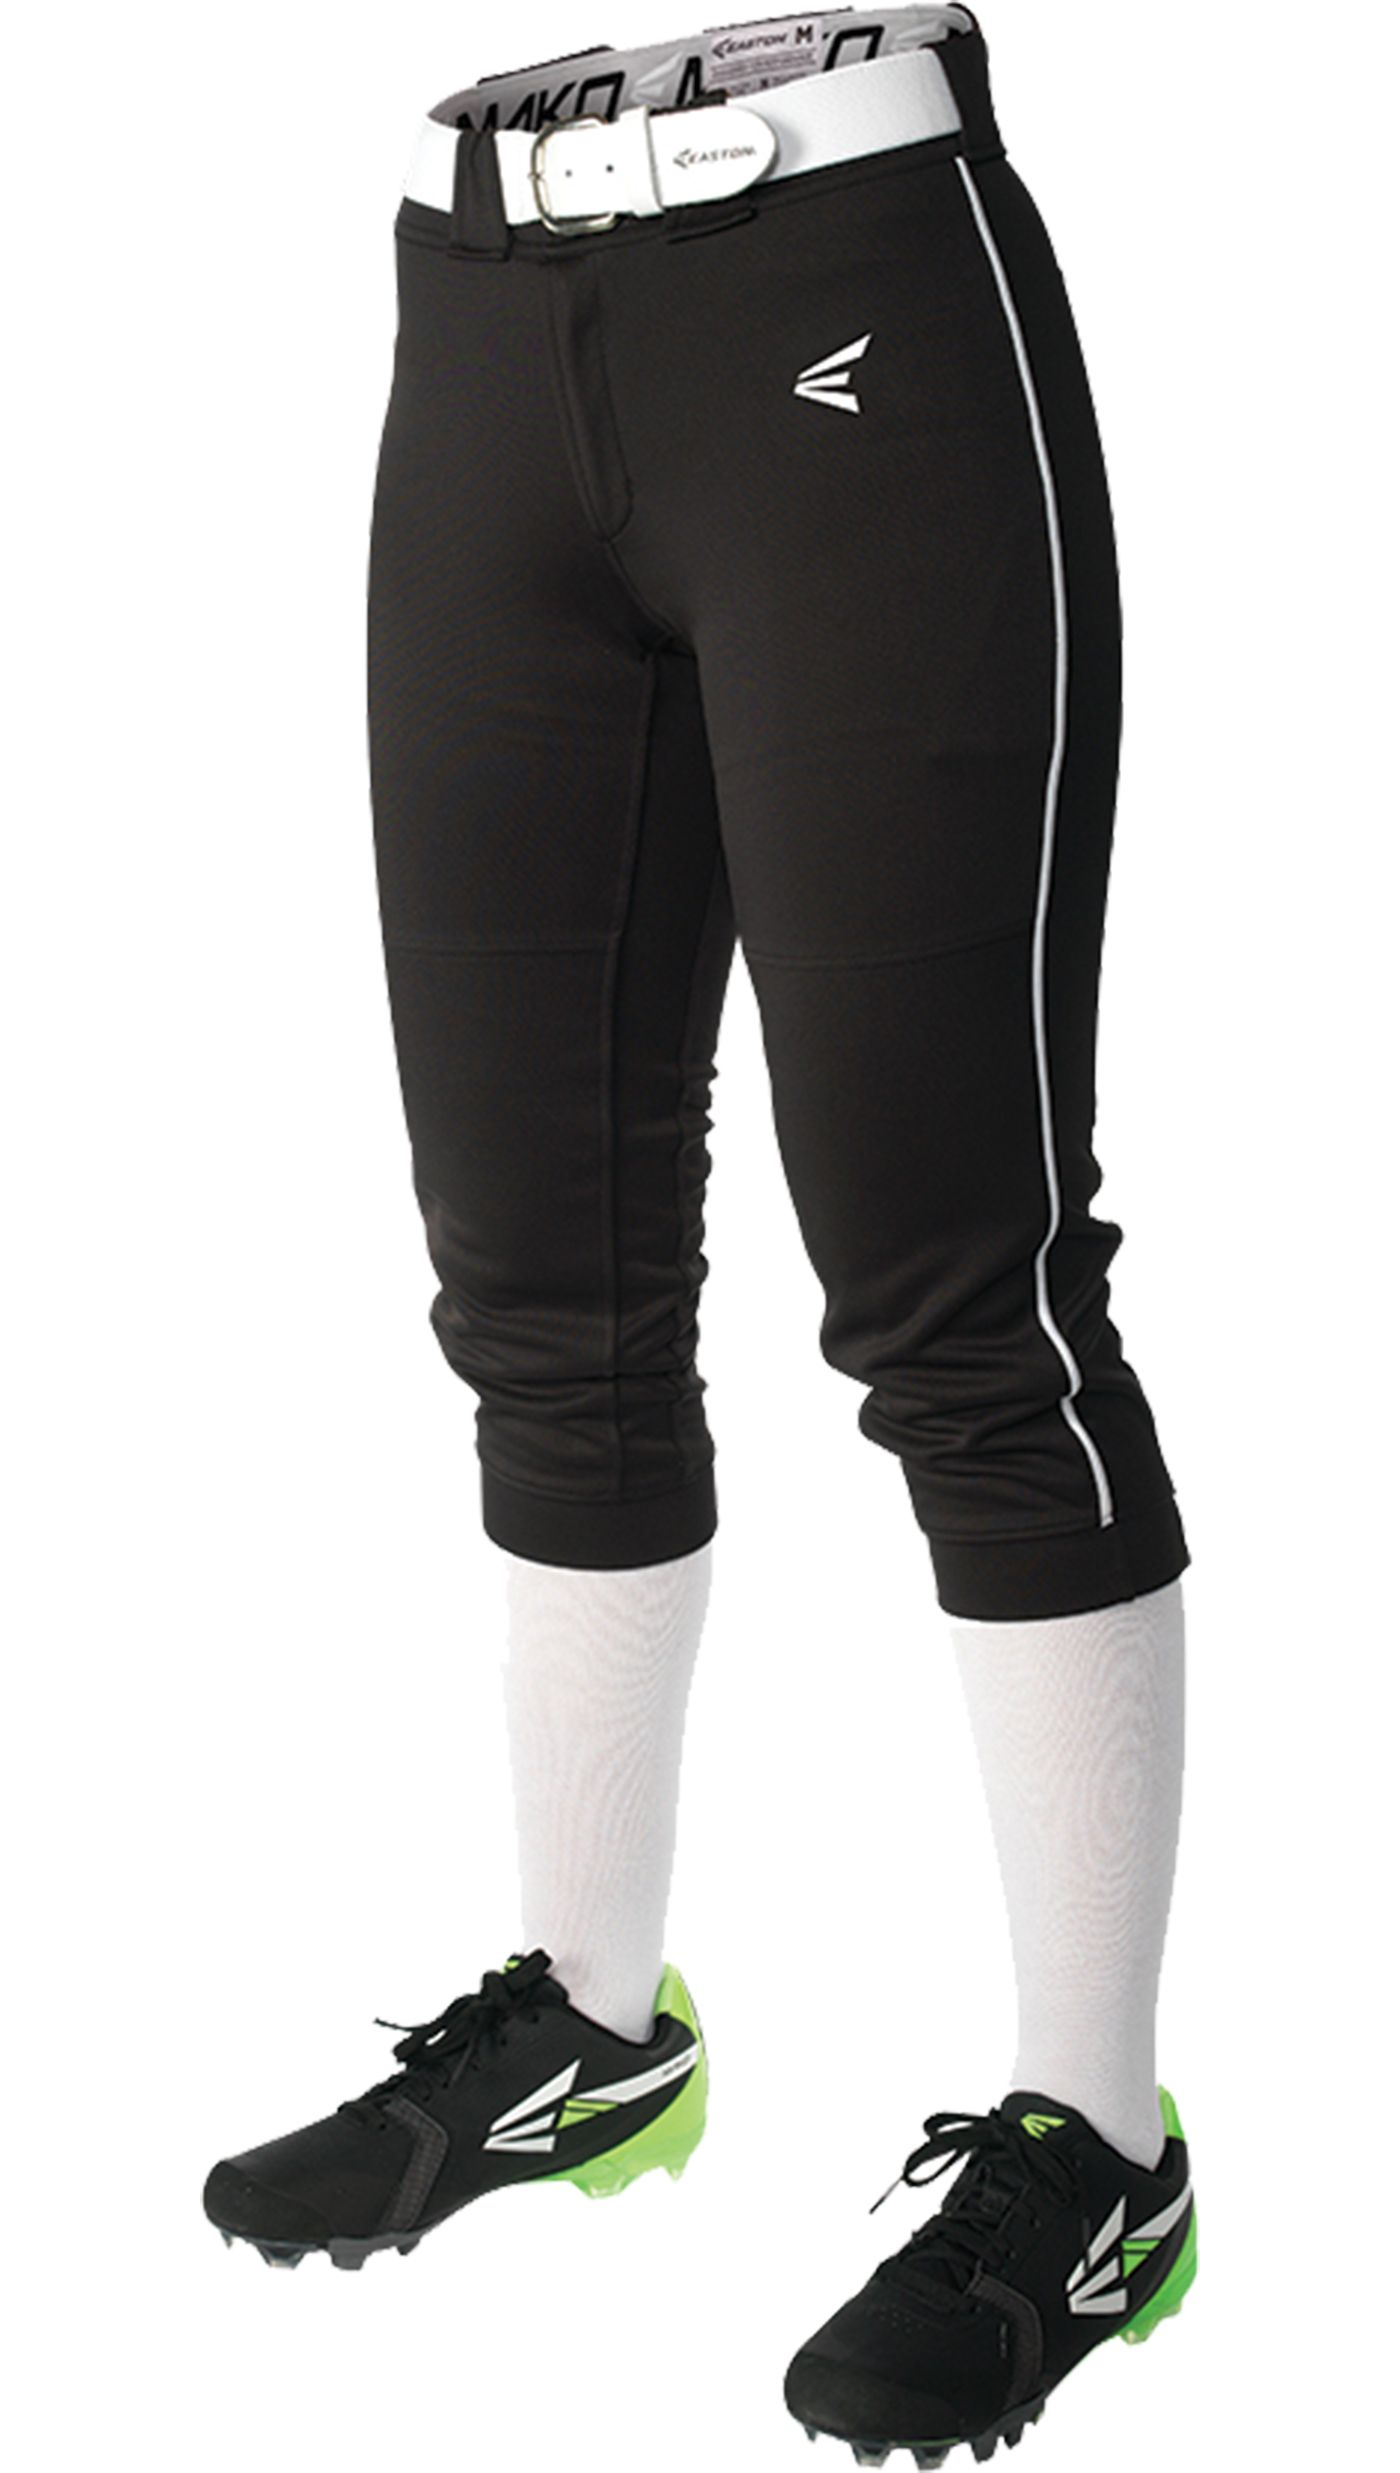 Easton Women's Mako Piped Fastpitch Pants